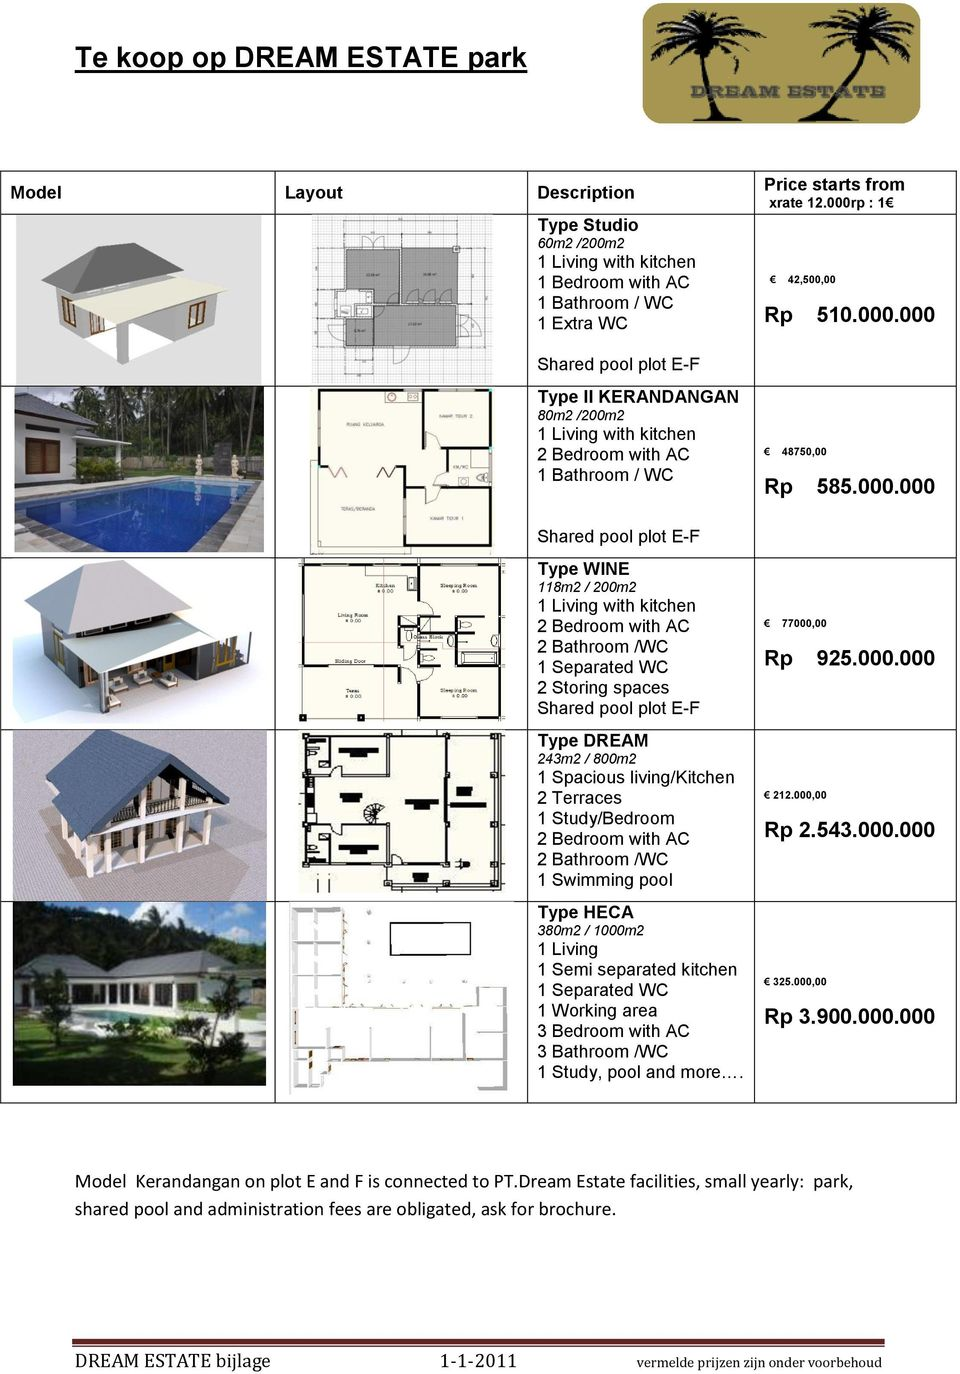 plot E-F Type DREAM 243m2 / 800m2 1 Spacious living/kitchen 2 Terraces 1 Study/Bedroom 2 Bedroom with AC 2 Bathroom /WC 1 Swimming pool Type HECA 380m2 / 1000m2 1 Living 1 Semi separated kitchen 1